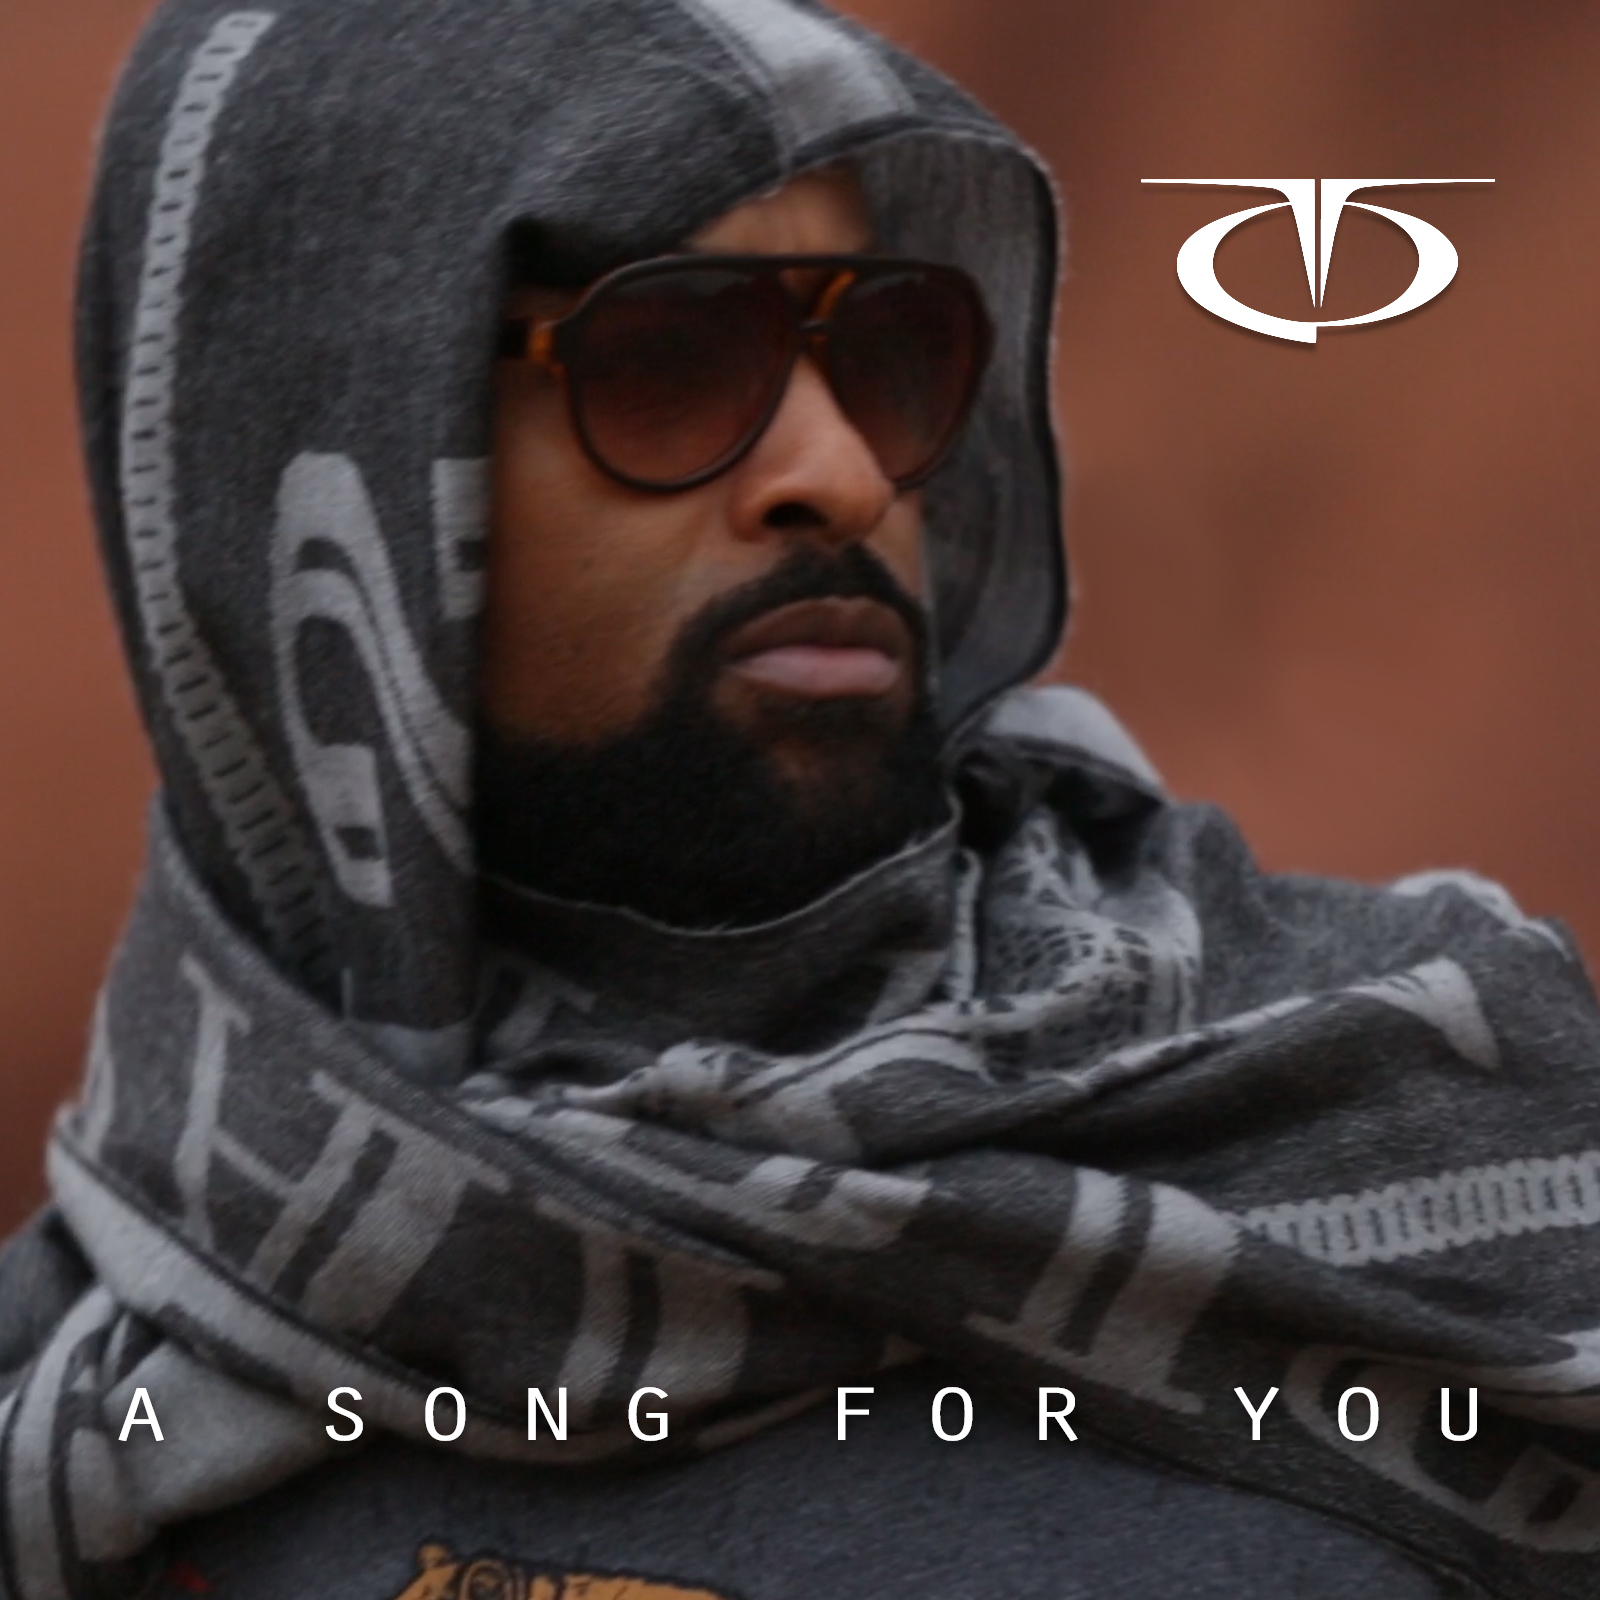 https://therealtq.com/wp-content/uploads/2019/01/Song-for-you-cover4_NEW.jpg